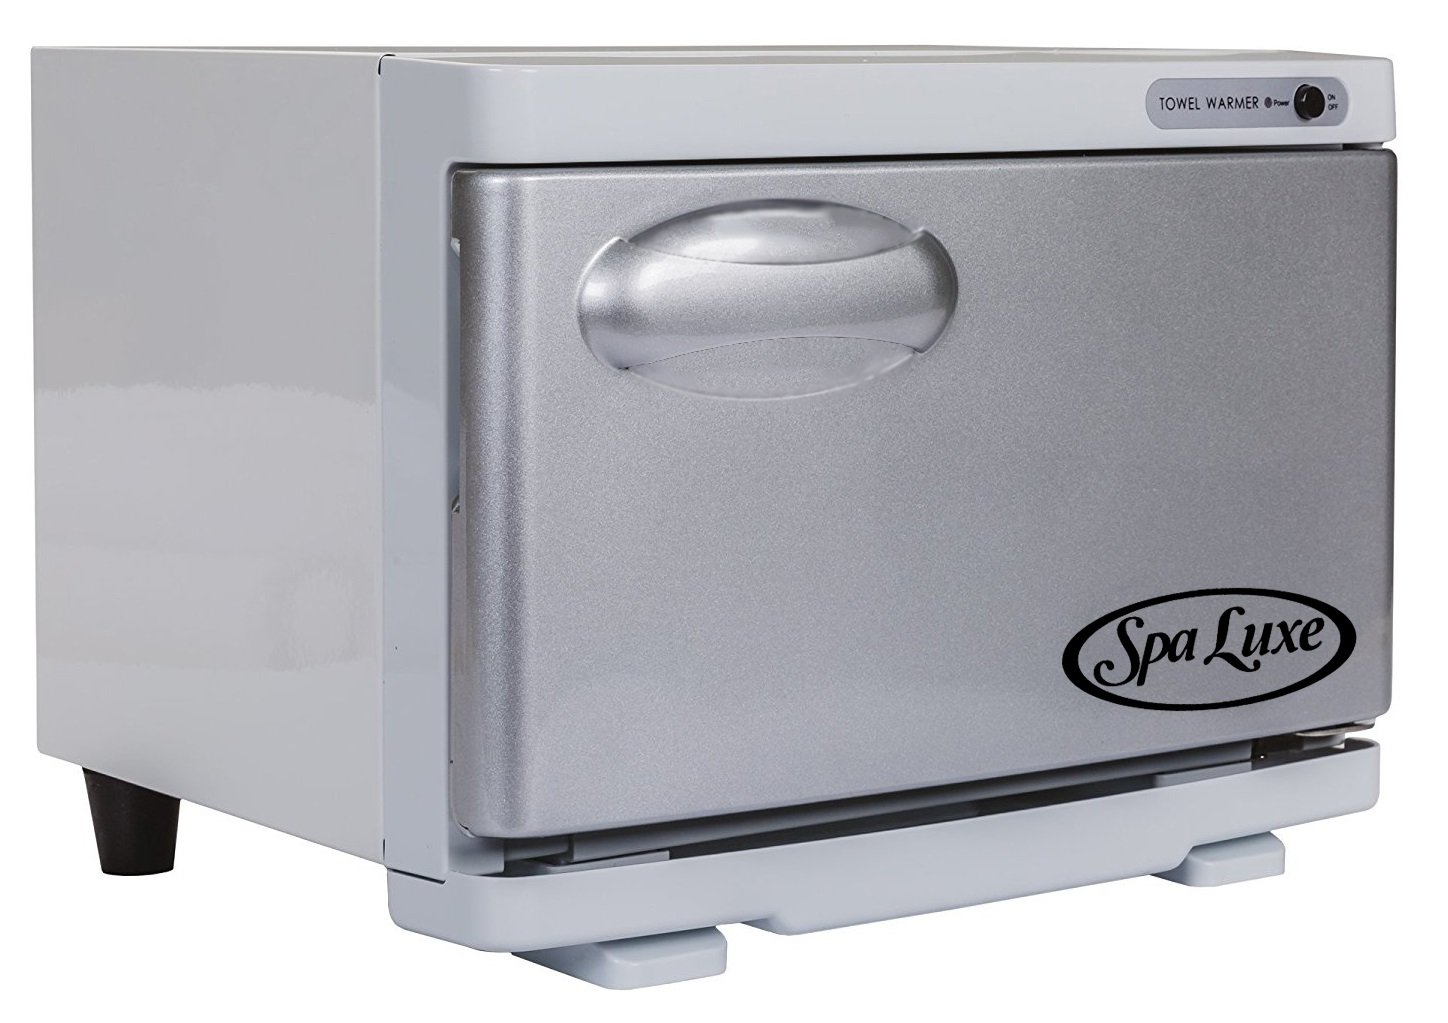 Spa Luxe SL8UVF - Mini Hot Towel Warmer Cabinet with UV (UL approved) (Silver/White)